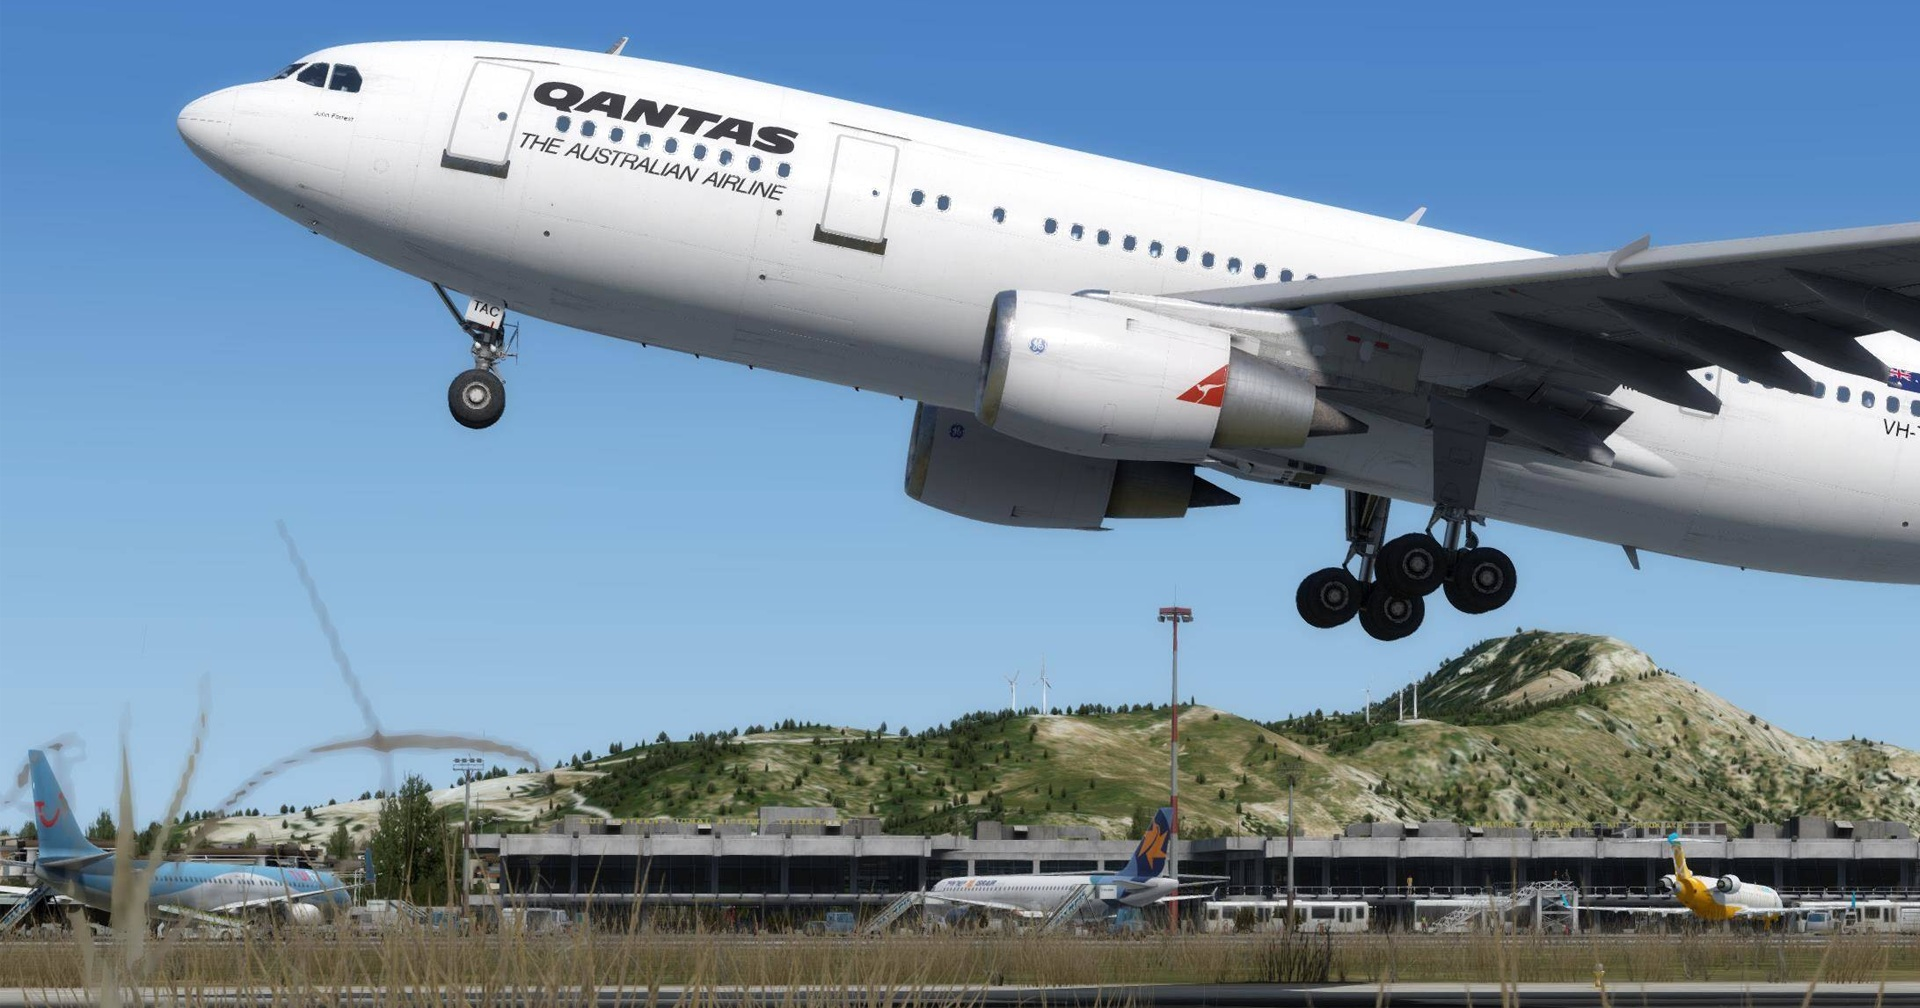 The Just Flight A300 with the Qantas Livery